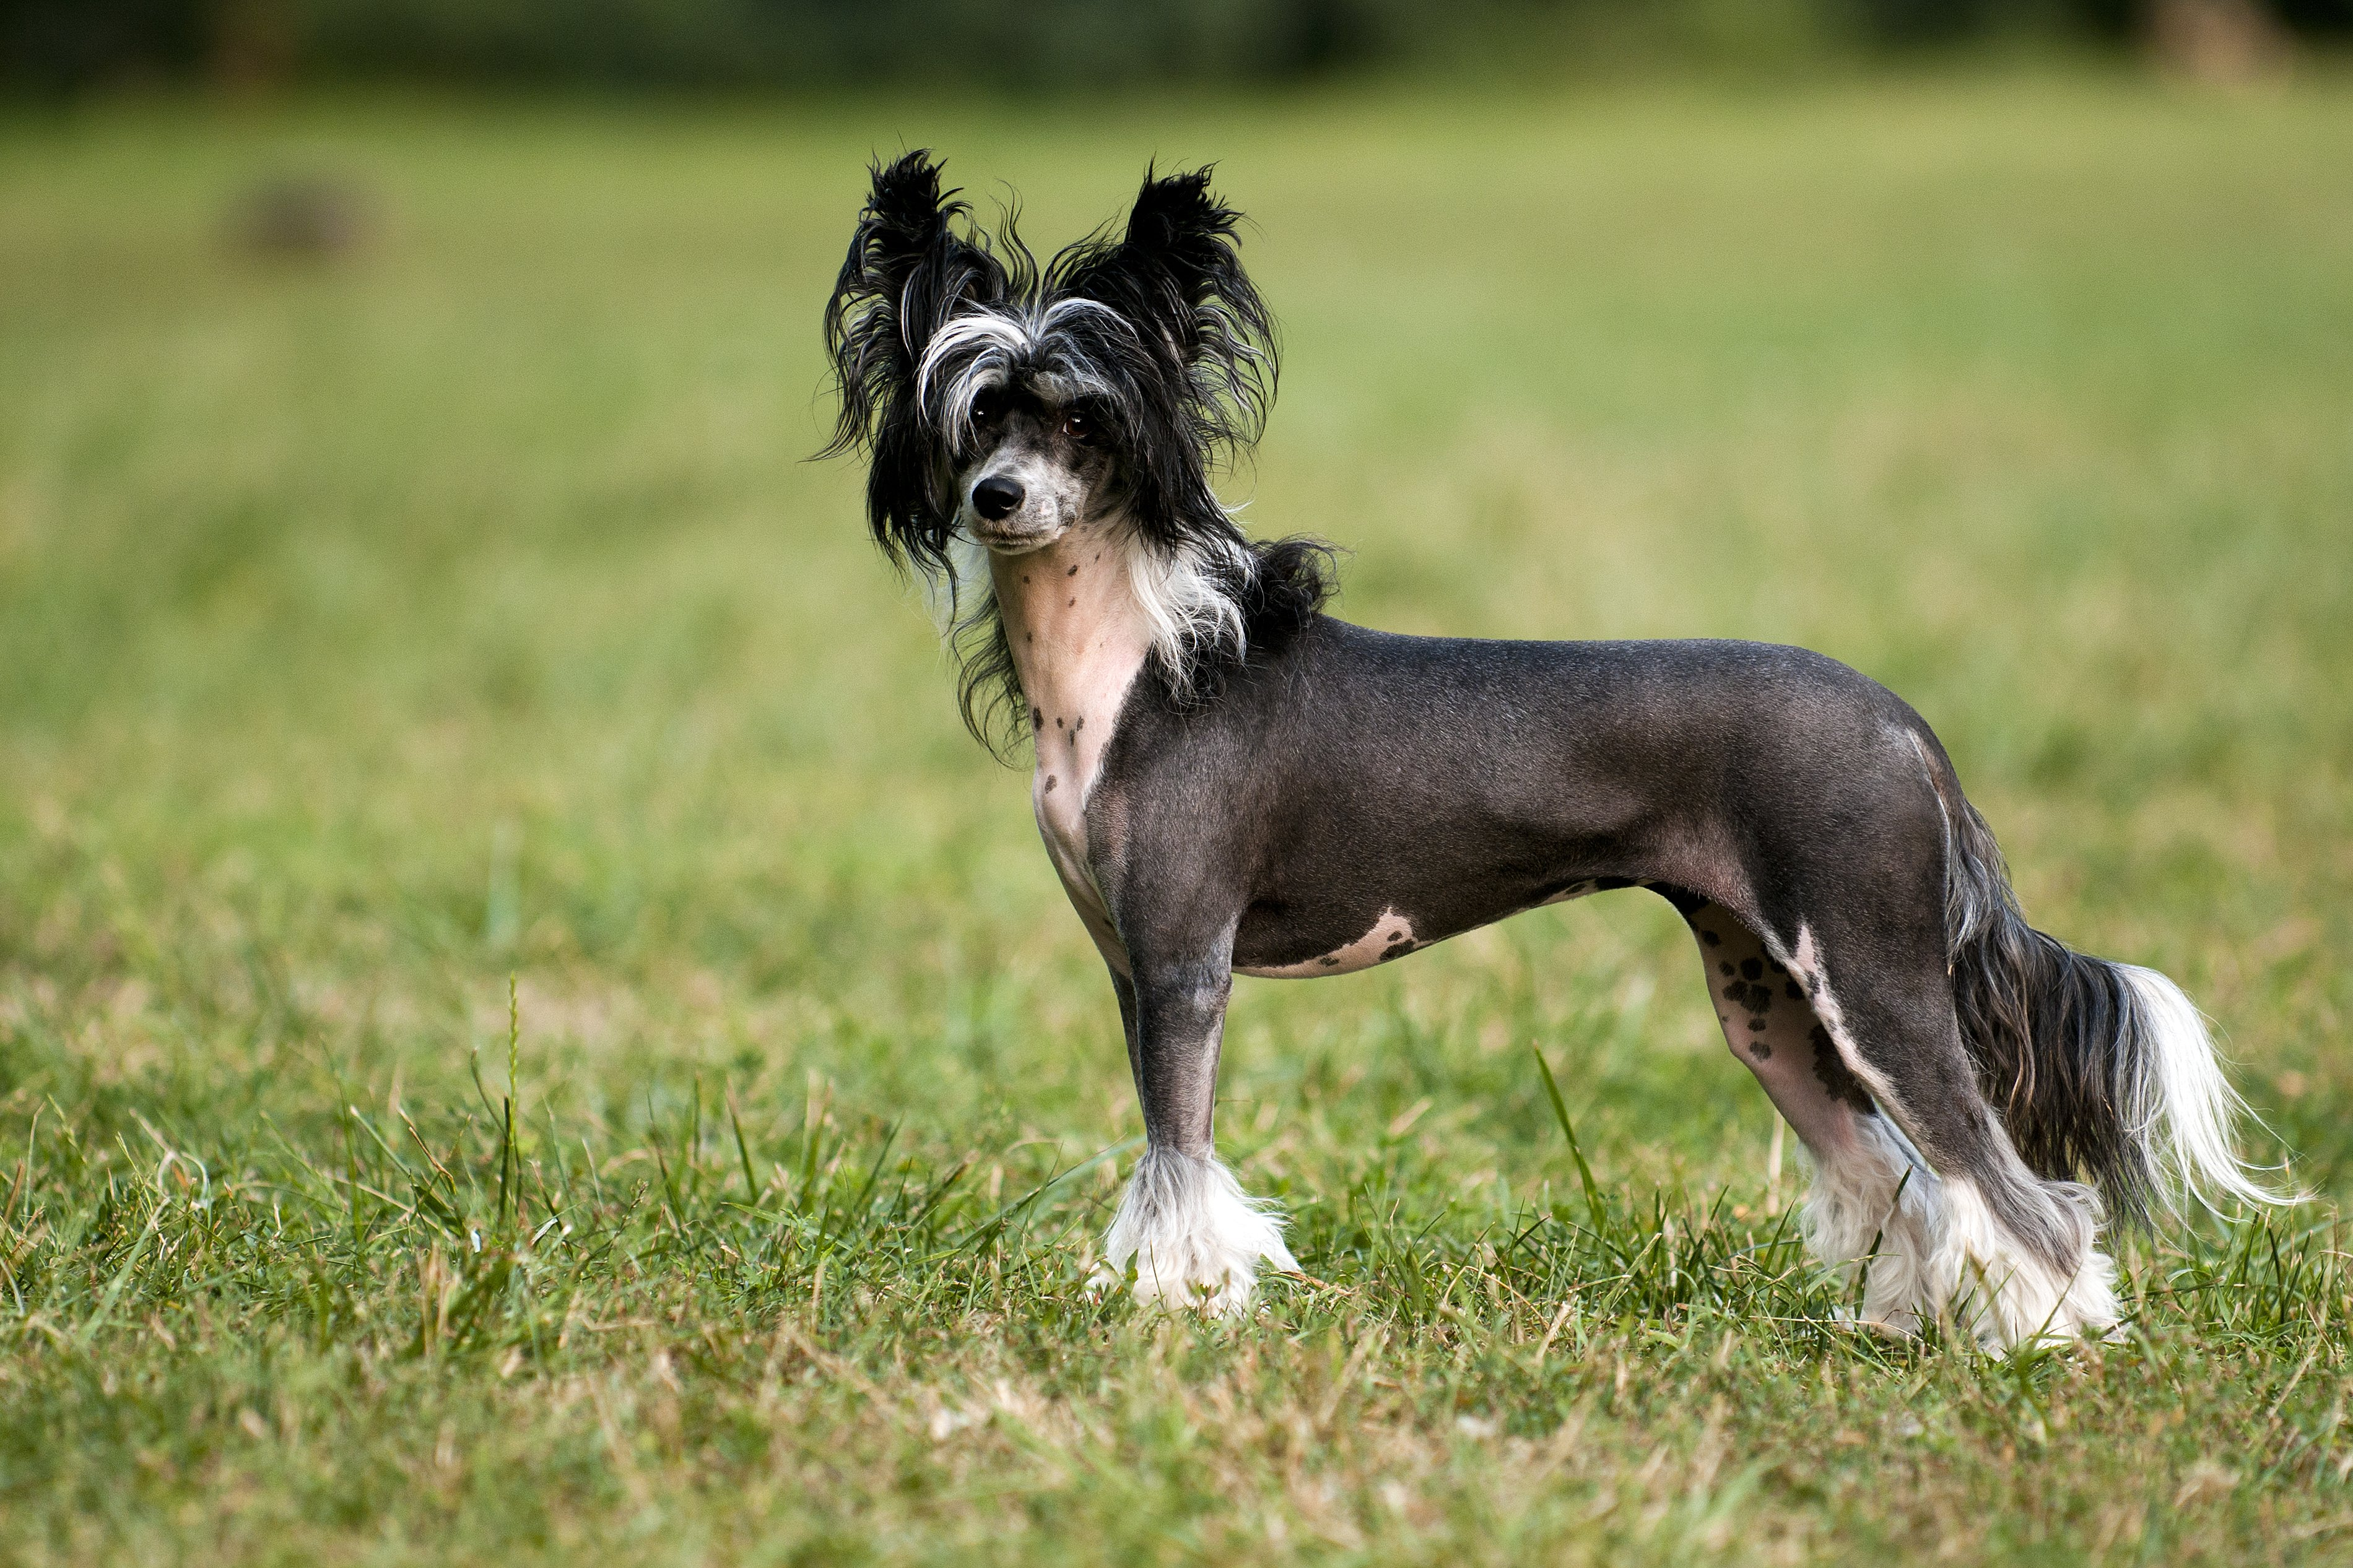 Attractive Chinese Crested Dog Ten Most Hypoallergenic Dogs Allergy Sufferers Low Maintenance Dogs That Can Be Left Alone Low Maintenance Dogs India bark post Low Maintenance Dogs